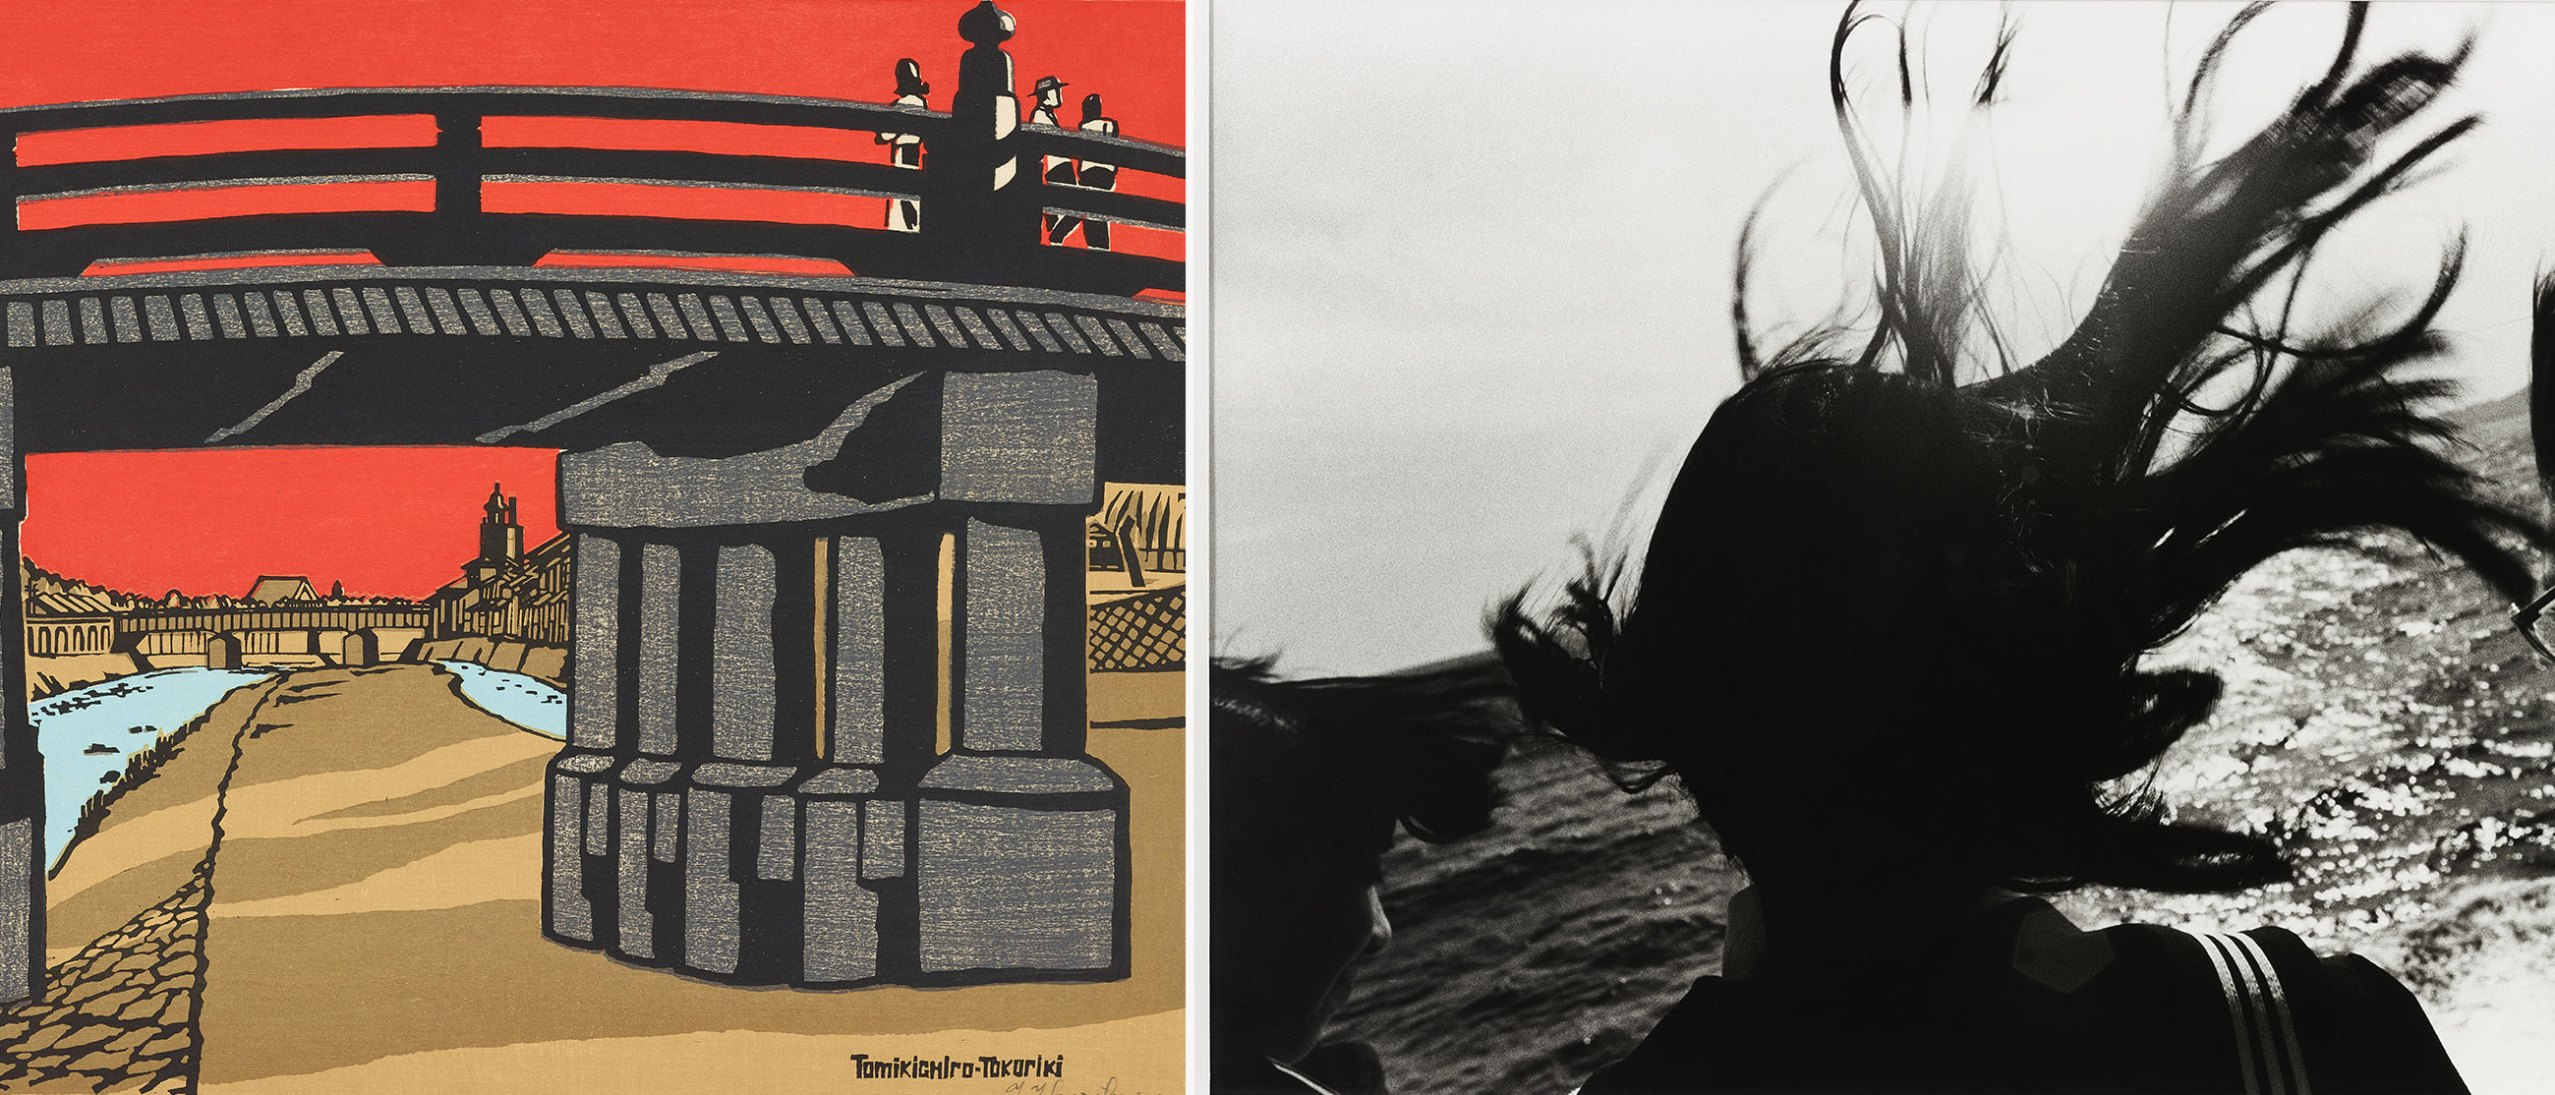 left, print on paper of a bridge against a bright red backdrop; right, black and whtie photo of girls with their hair flying in the wind.